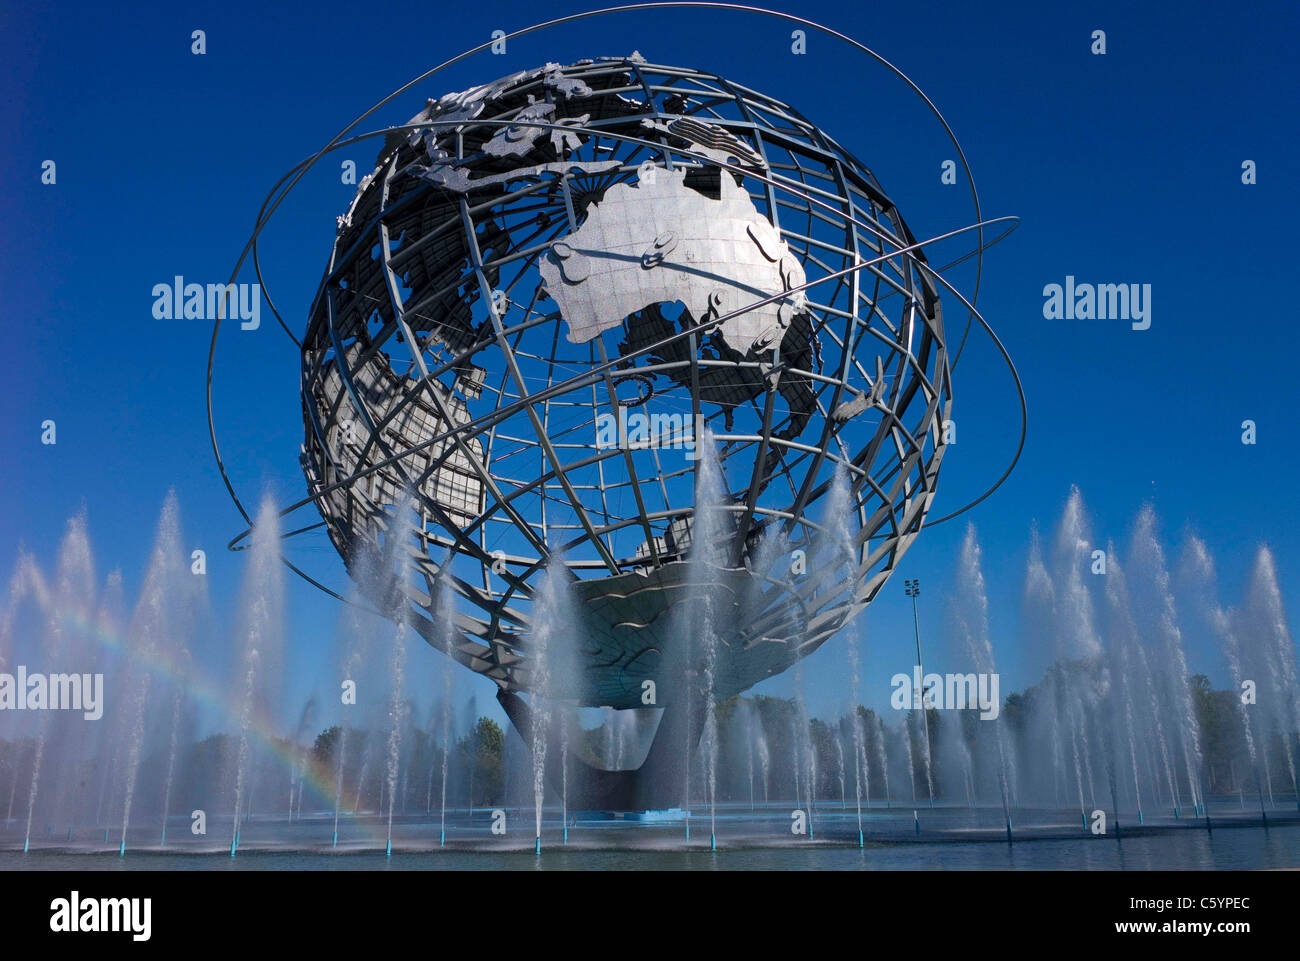 sun sets on the Unisphere World's fair US Steel NY New York Big Apple tourism bygone era fountain water jets - Stock Image